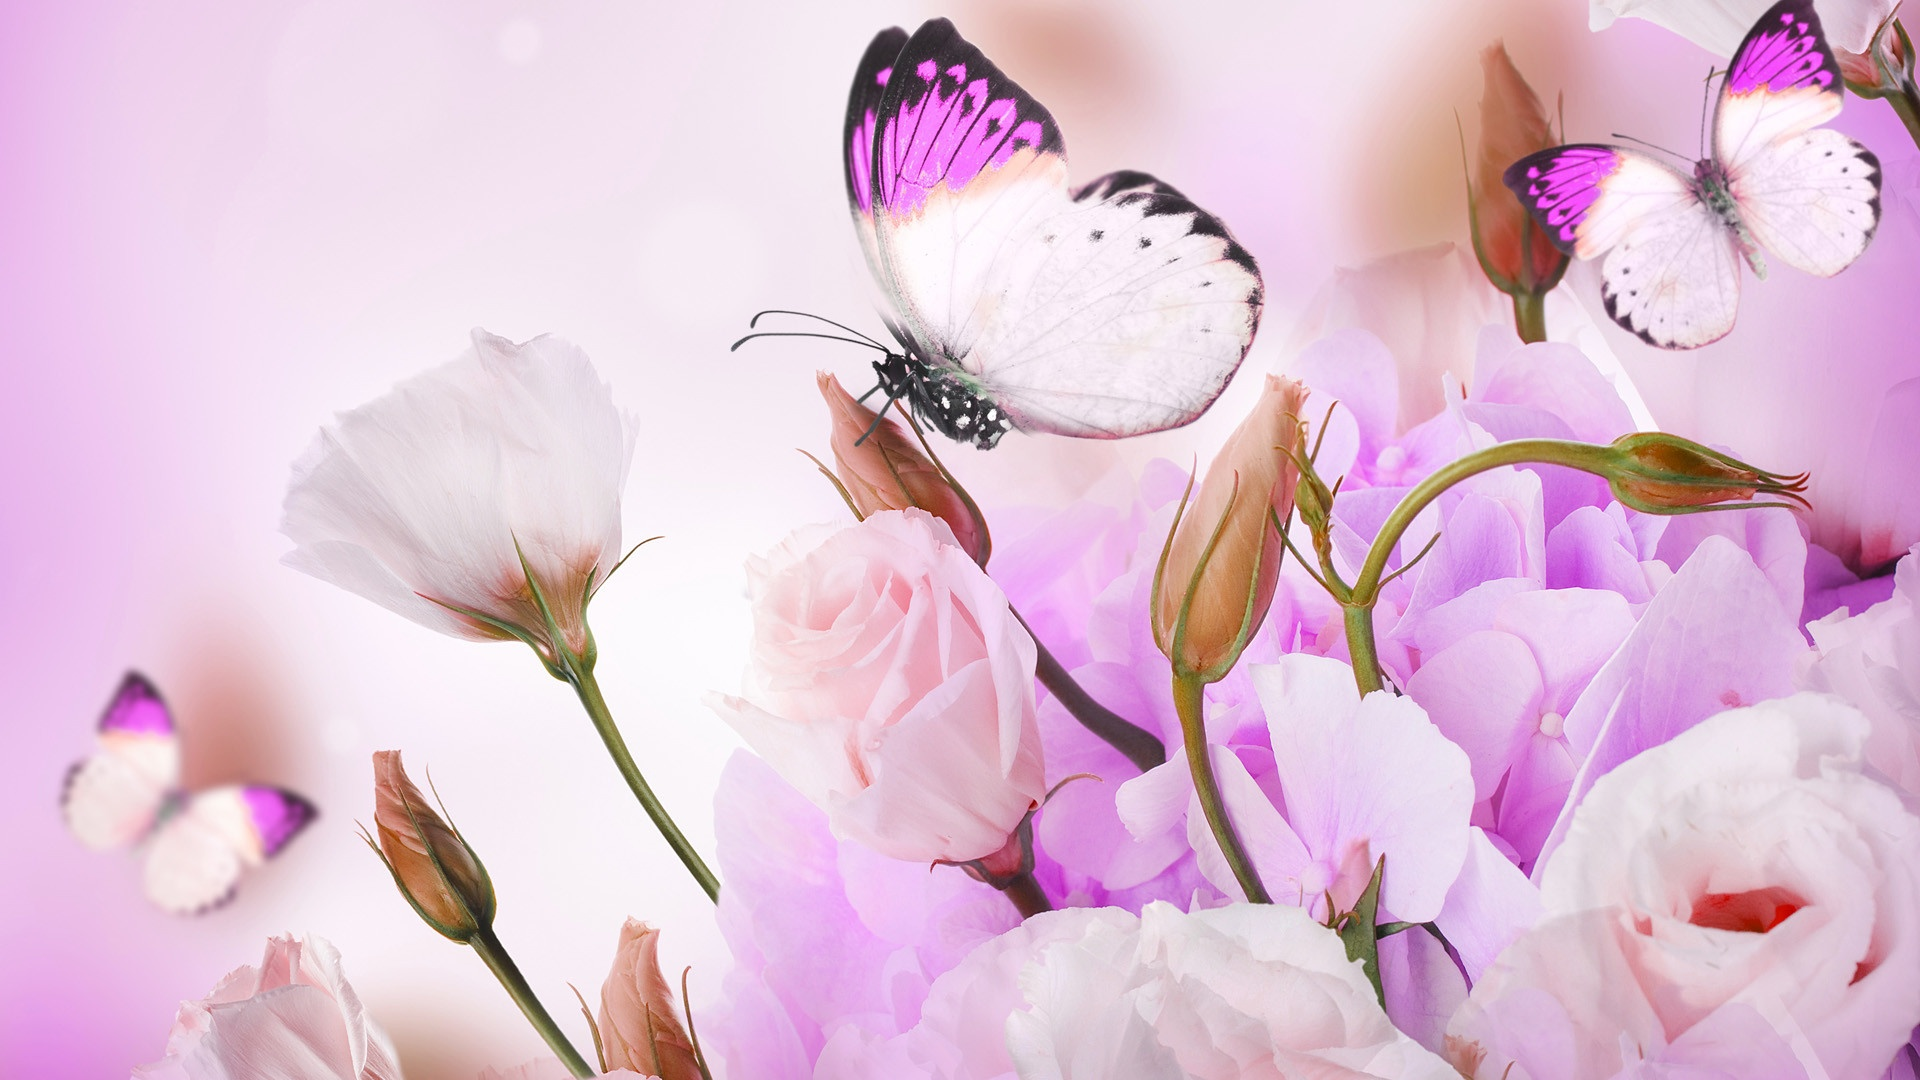 Bouquet Of Pink Roses And Butterfly, Floral Background 1920x1080 wallpaper